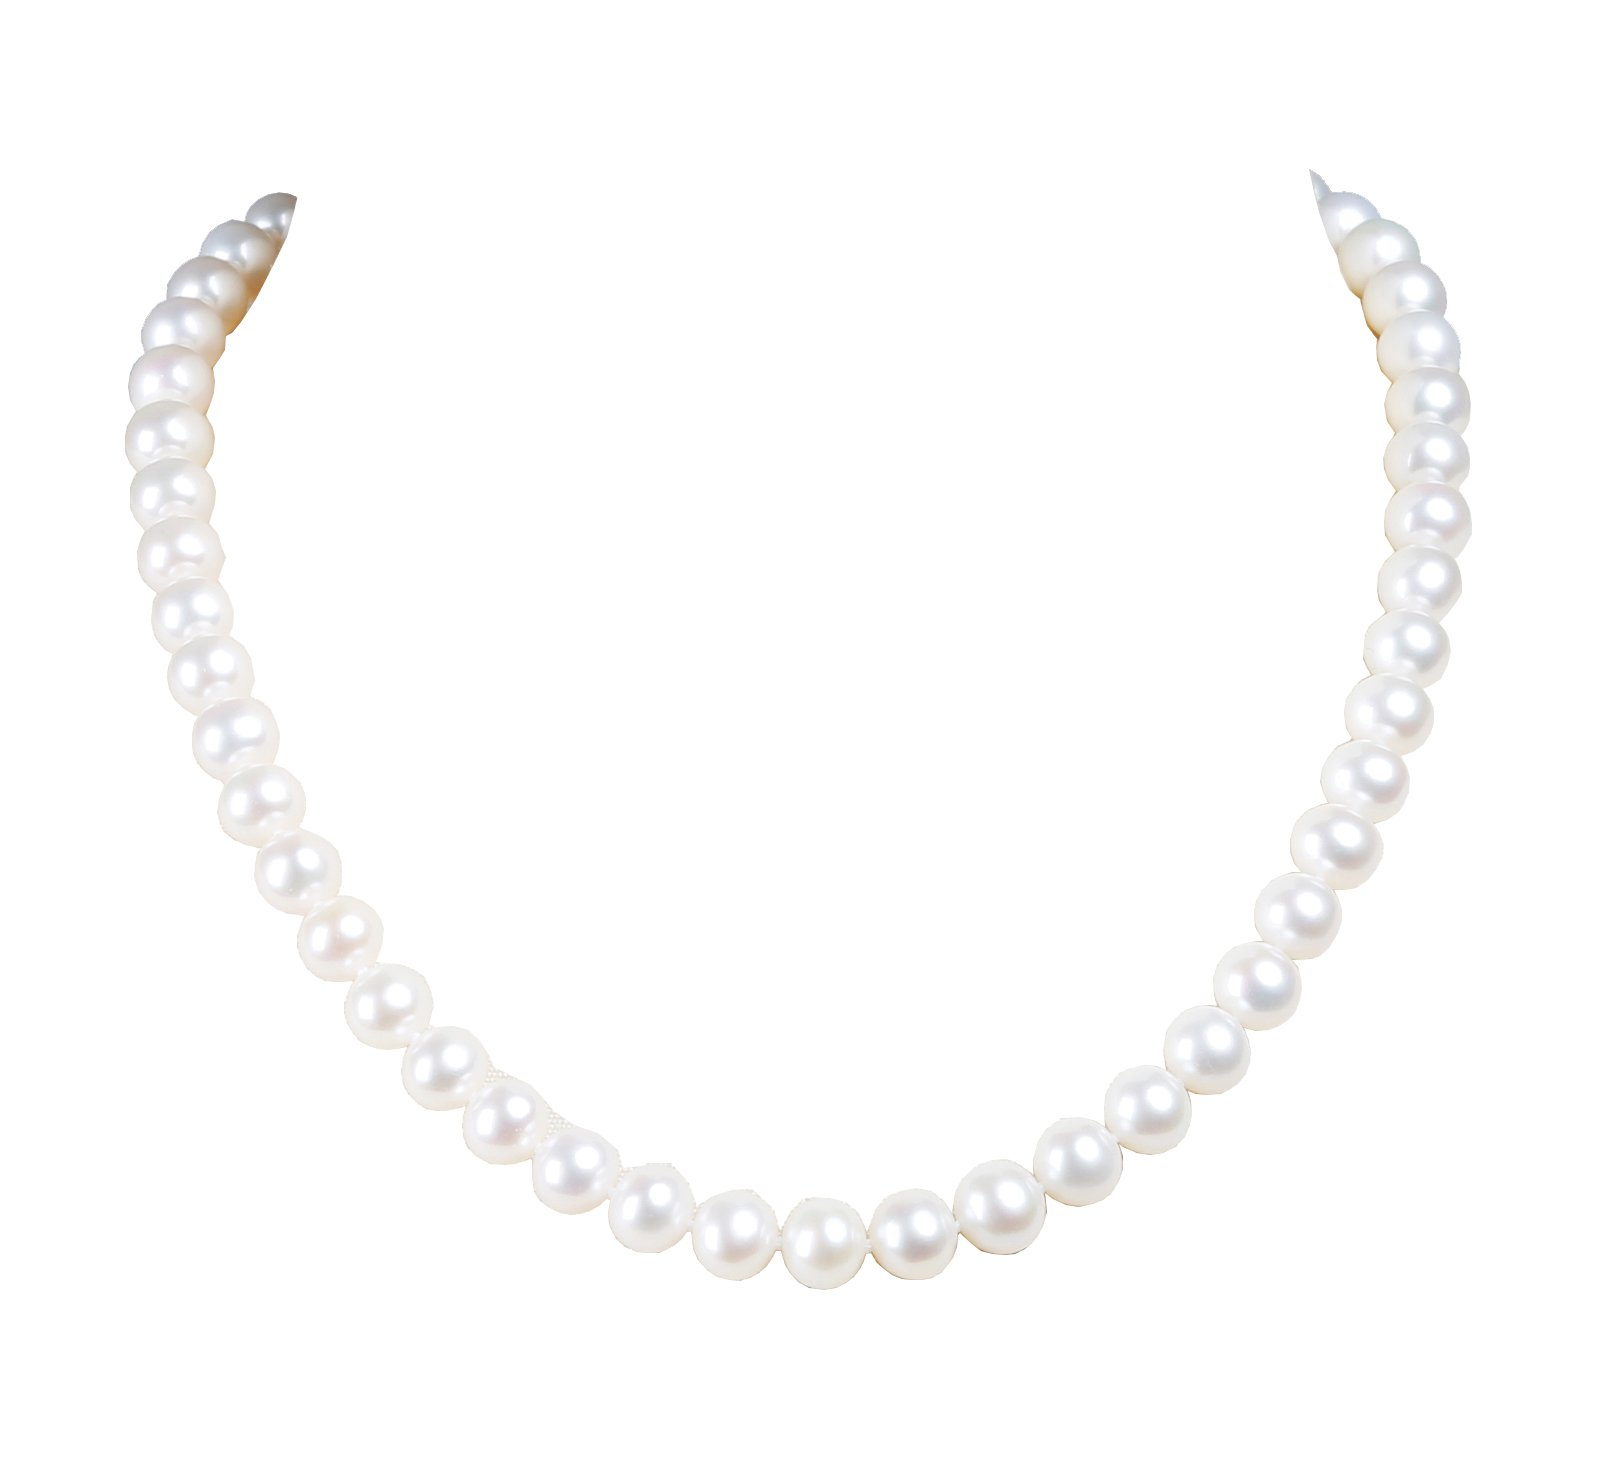 AIDNI AAA Quality Freshwater Cultured White Round Pearl Necklace, Prince Length 18.5'' (8.5-9.5mm)